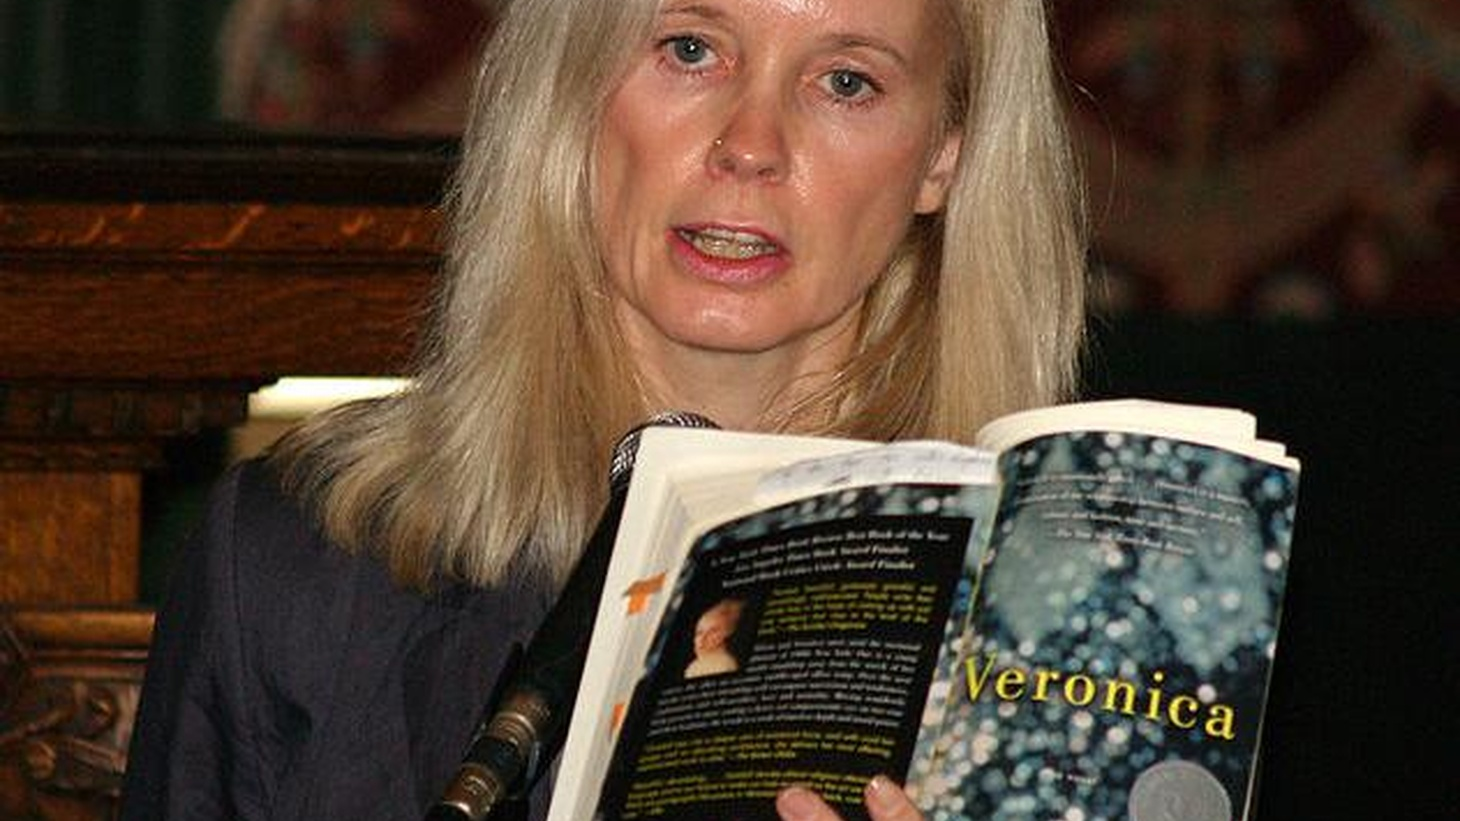 Don't Cry (Pantheon) The extraordinary levels of empathy and sadness in Mary Gaitskill's new stories provide the basis for this intense discussion of the emotional subtexts of her fiction.